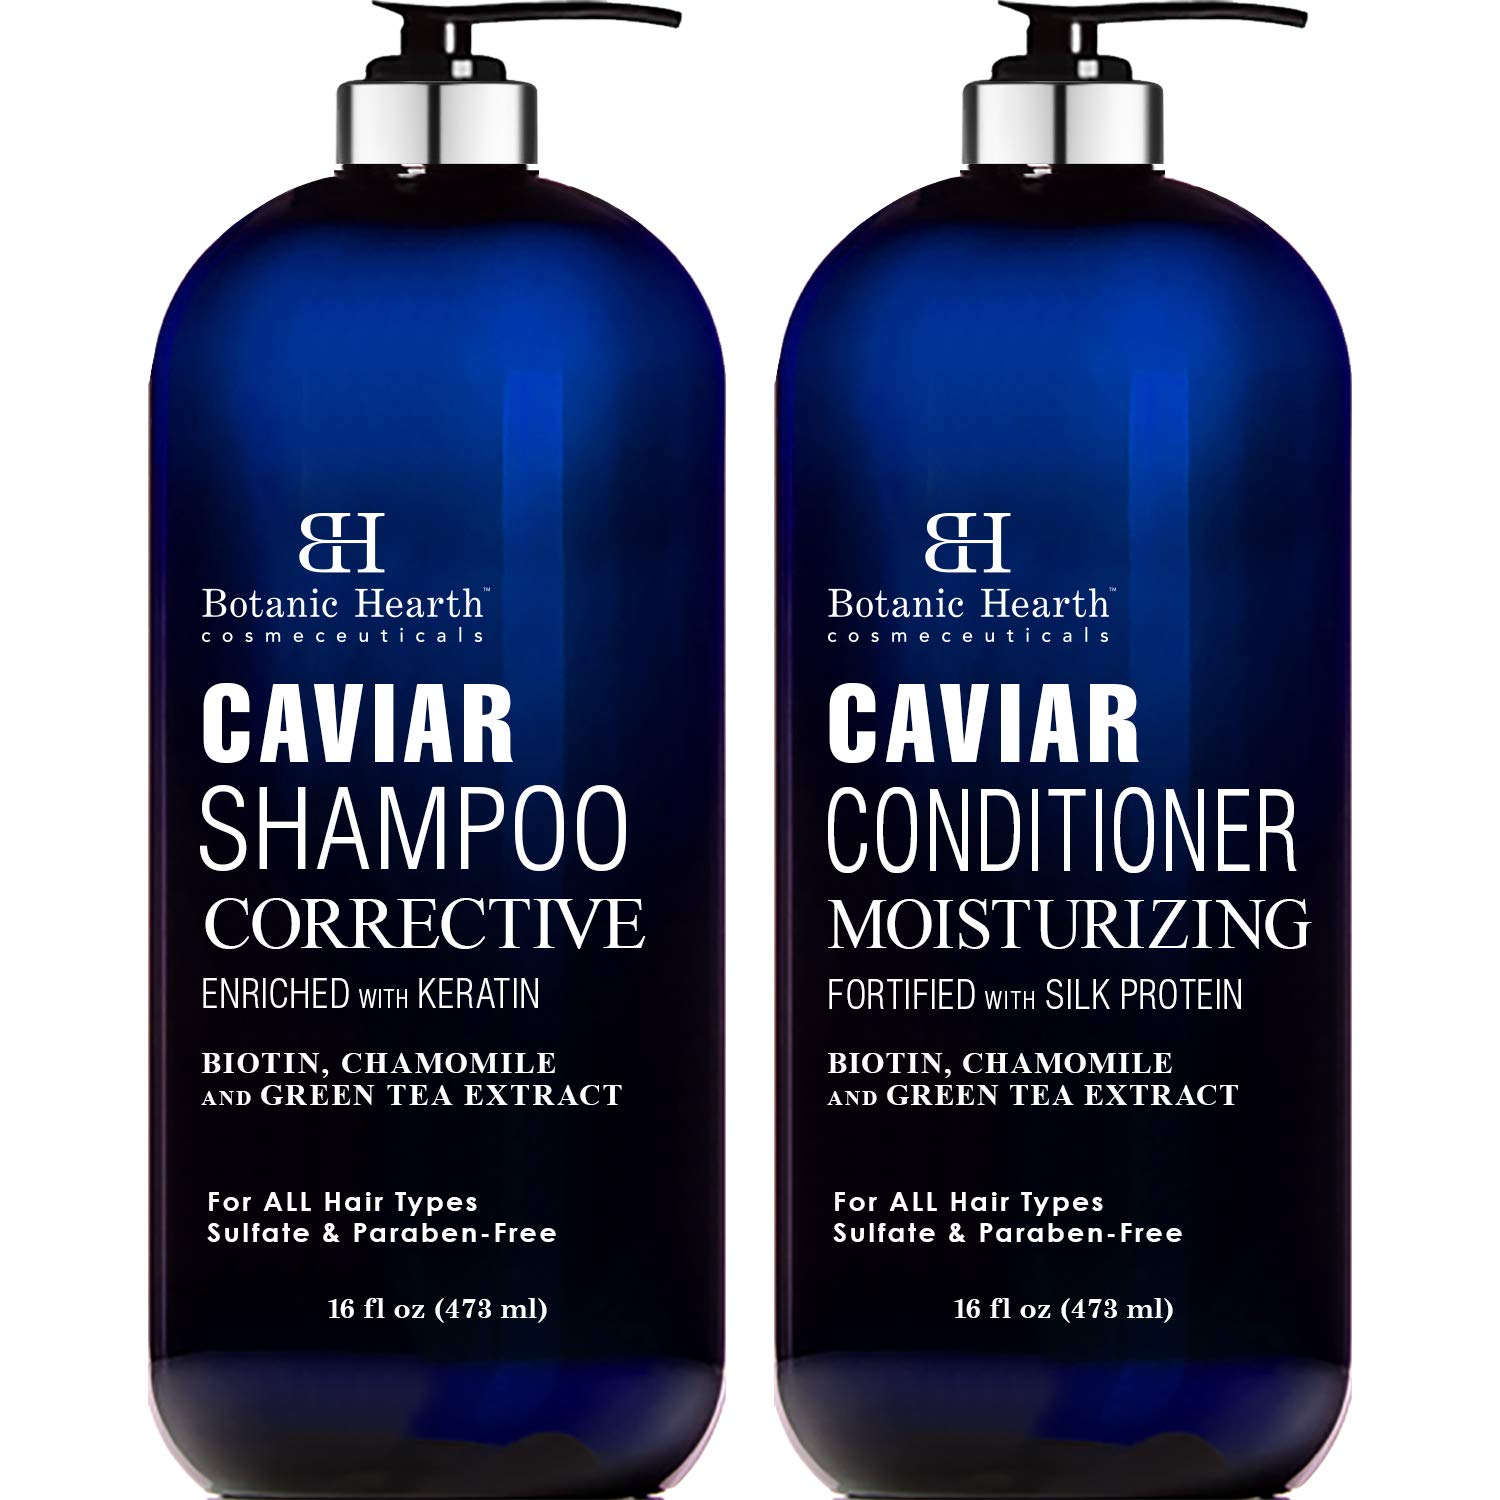 Botanic Hearth Caviar Shampoo and Conditioner Set - Sulfate Free, Shampoo Enriched with Keratin & Conditioner with Silk Protein - for Men and Women - Safe for Color Treated Hair - 16 fl oz x 2 by Botanic Hearth